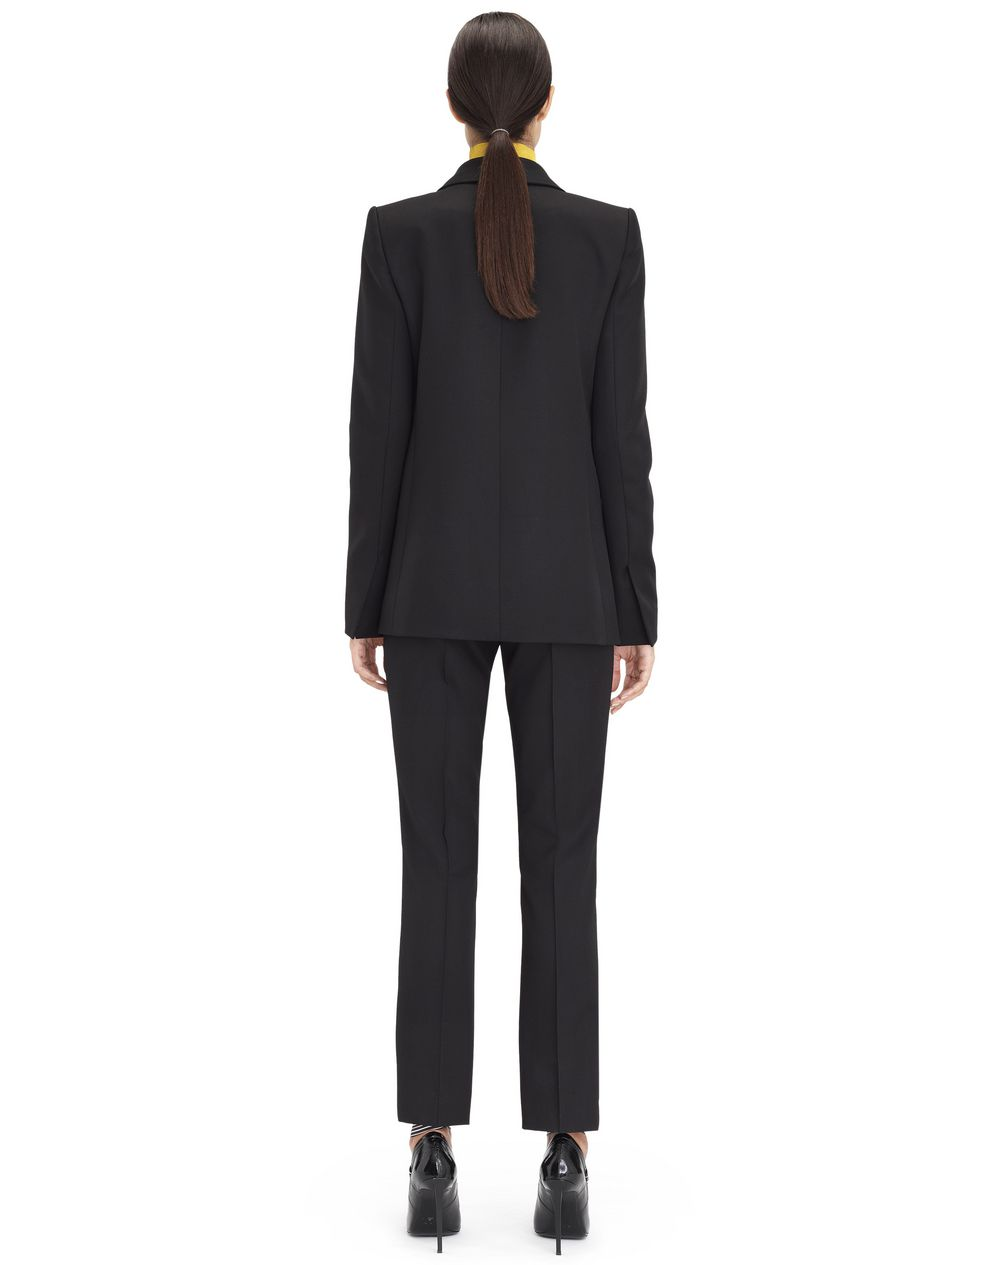 BLACK GRAIN DE POUDRE TAILORED JACKET - Lanvin